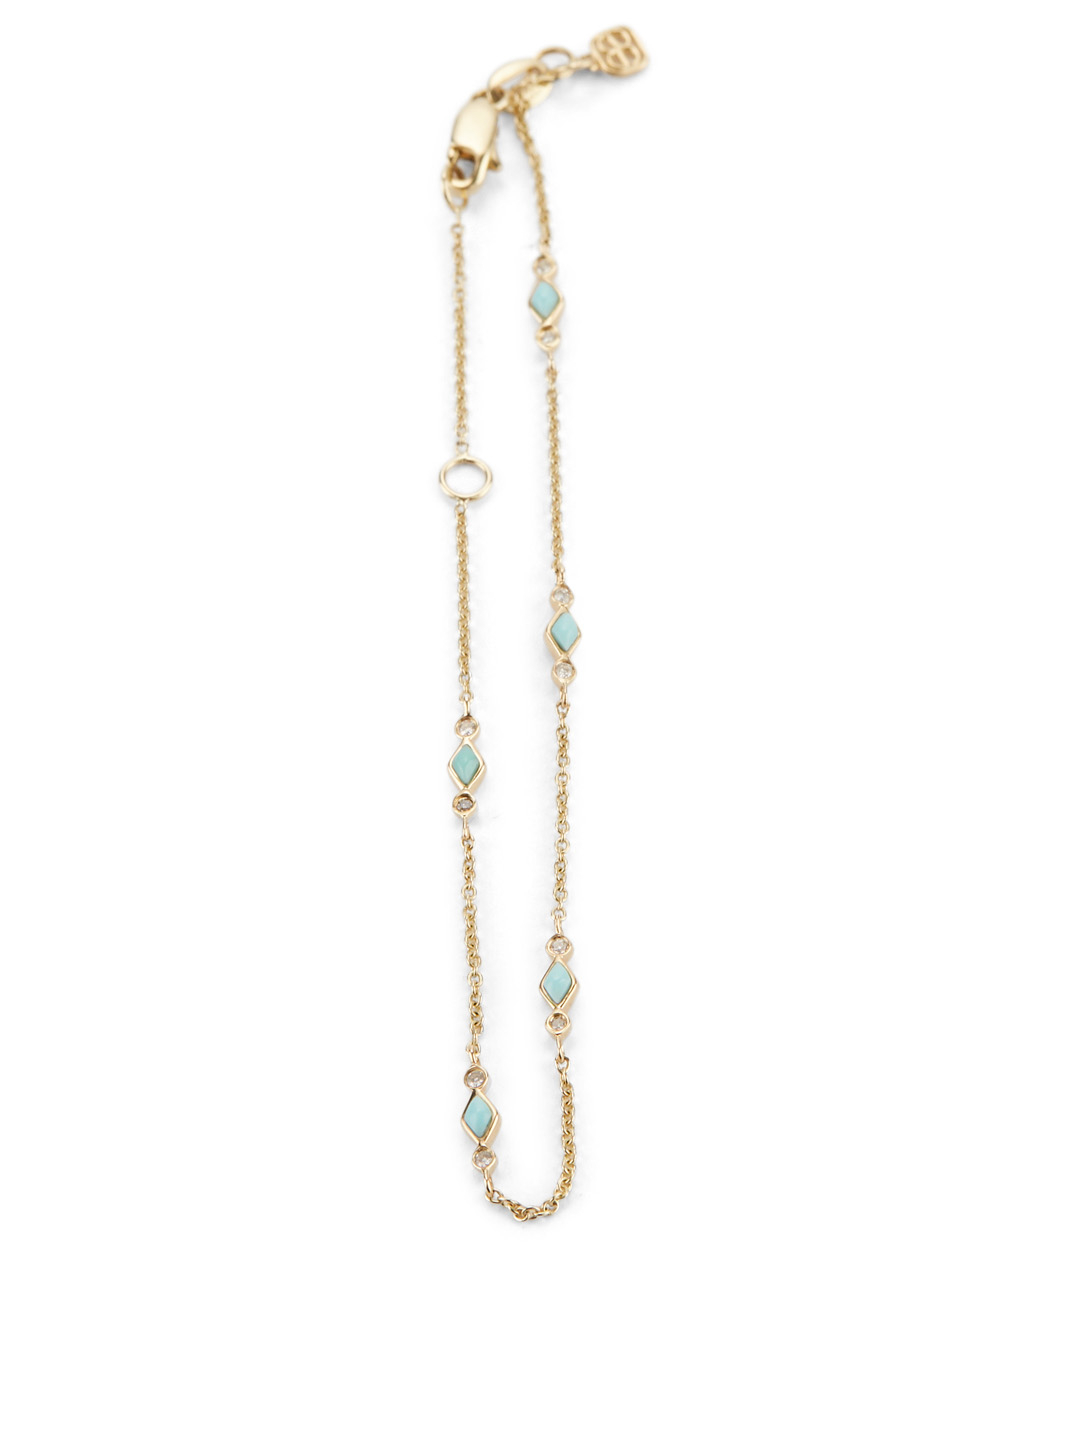 SYDNEY EVAN 14K Gold Bracelet With Turquoise and Diamonds Women's Gold